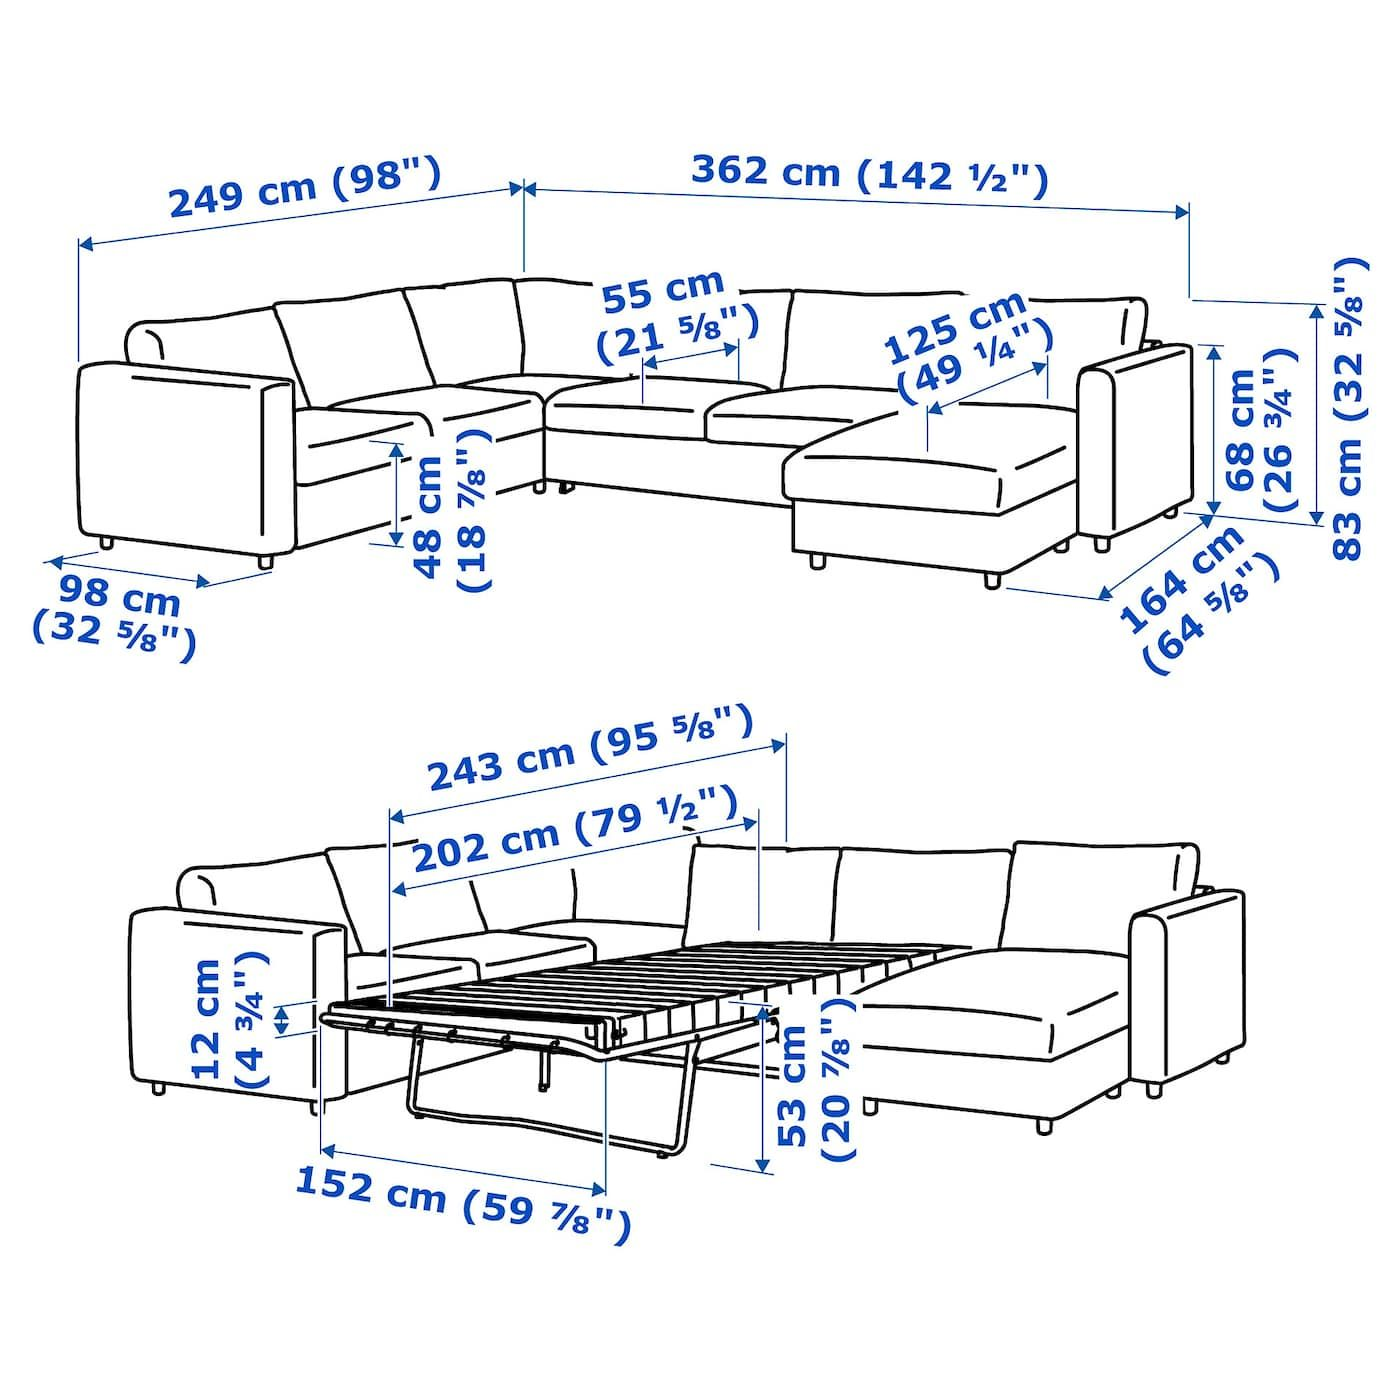 Vimle Corner Sofabed W Chaise With Chaise Farsta Dark Brown Sofa Bed Sofa Bed Frame Sofa Back Cushions